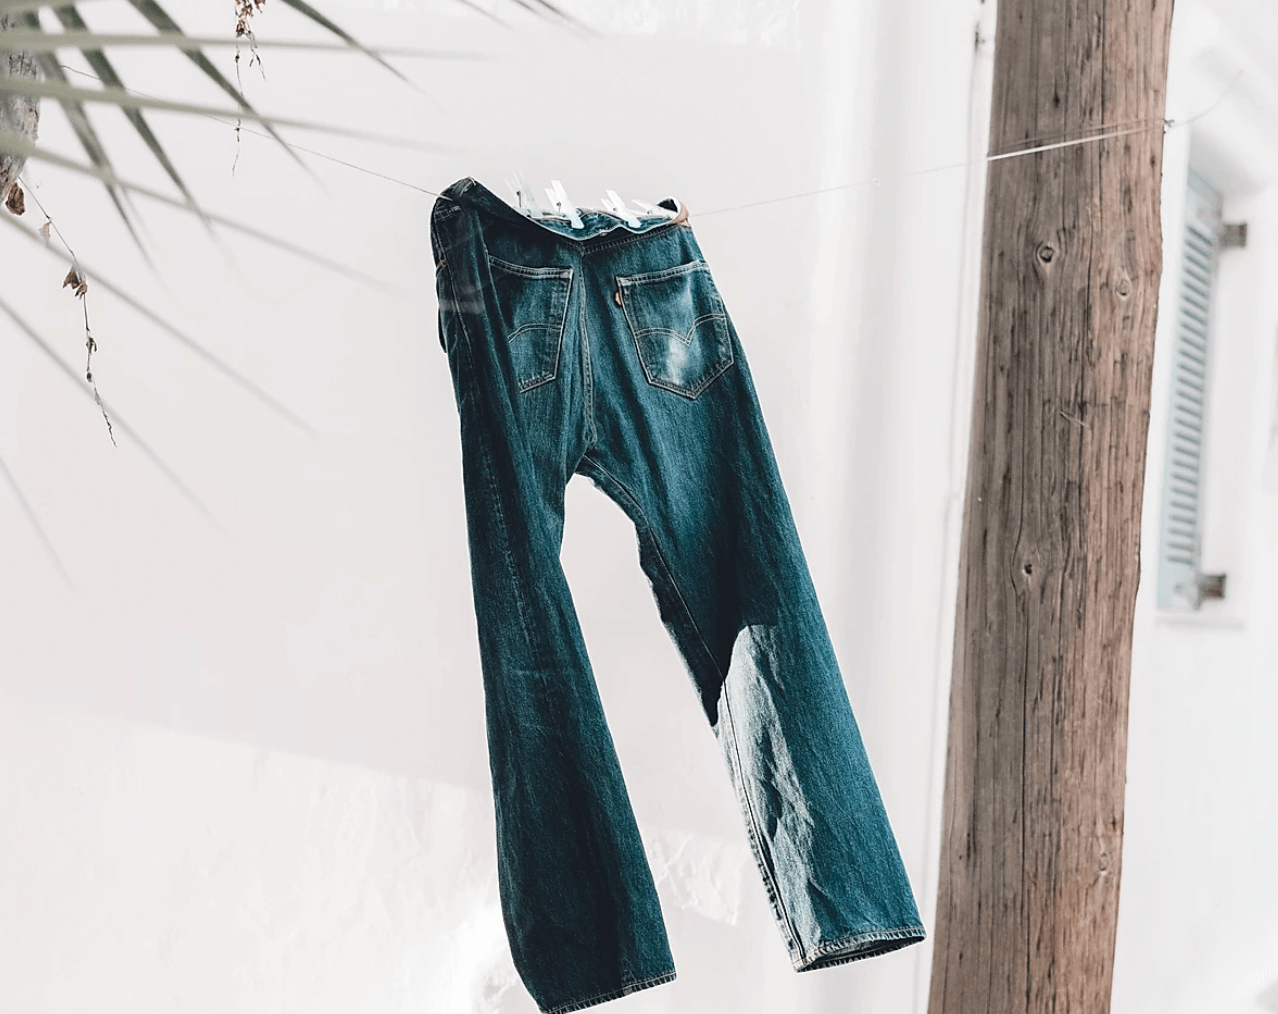 jeans hanging in the wind